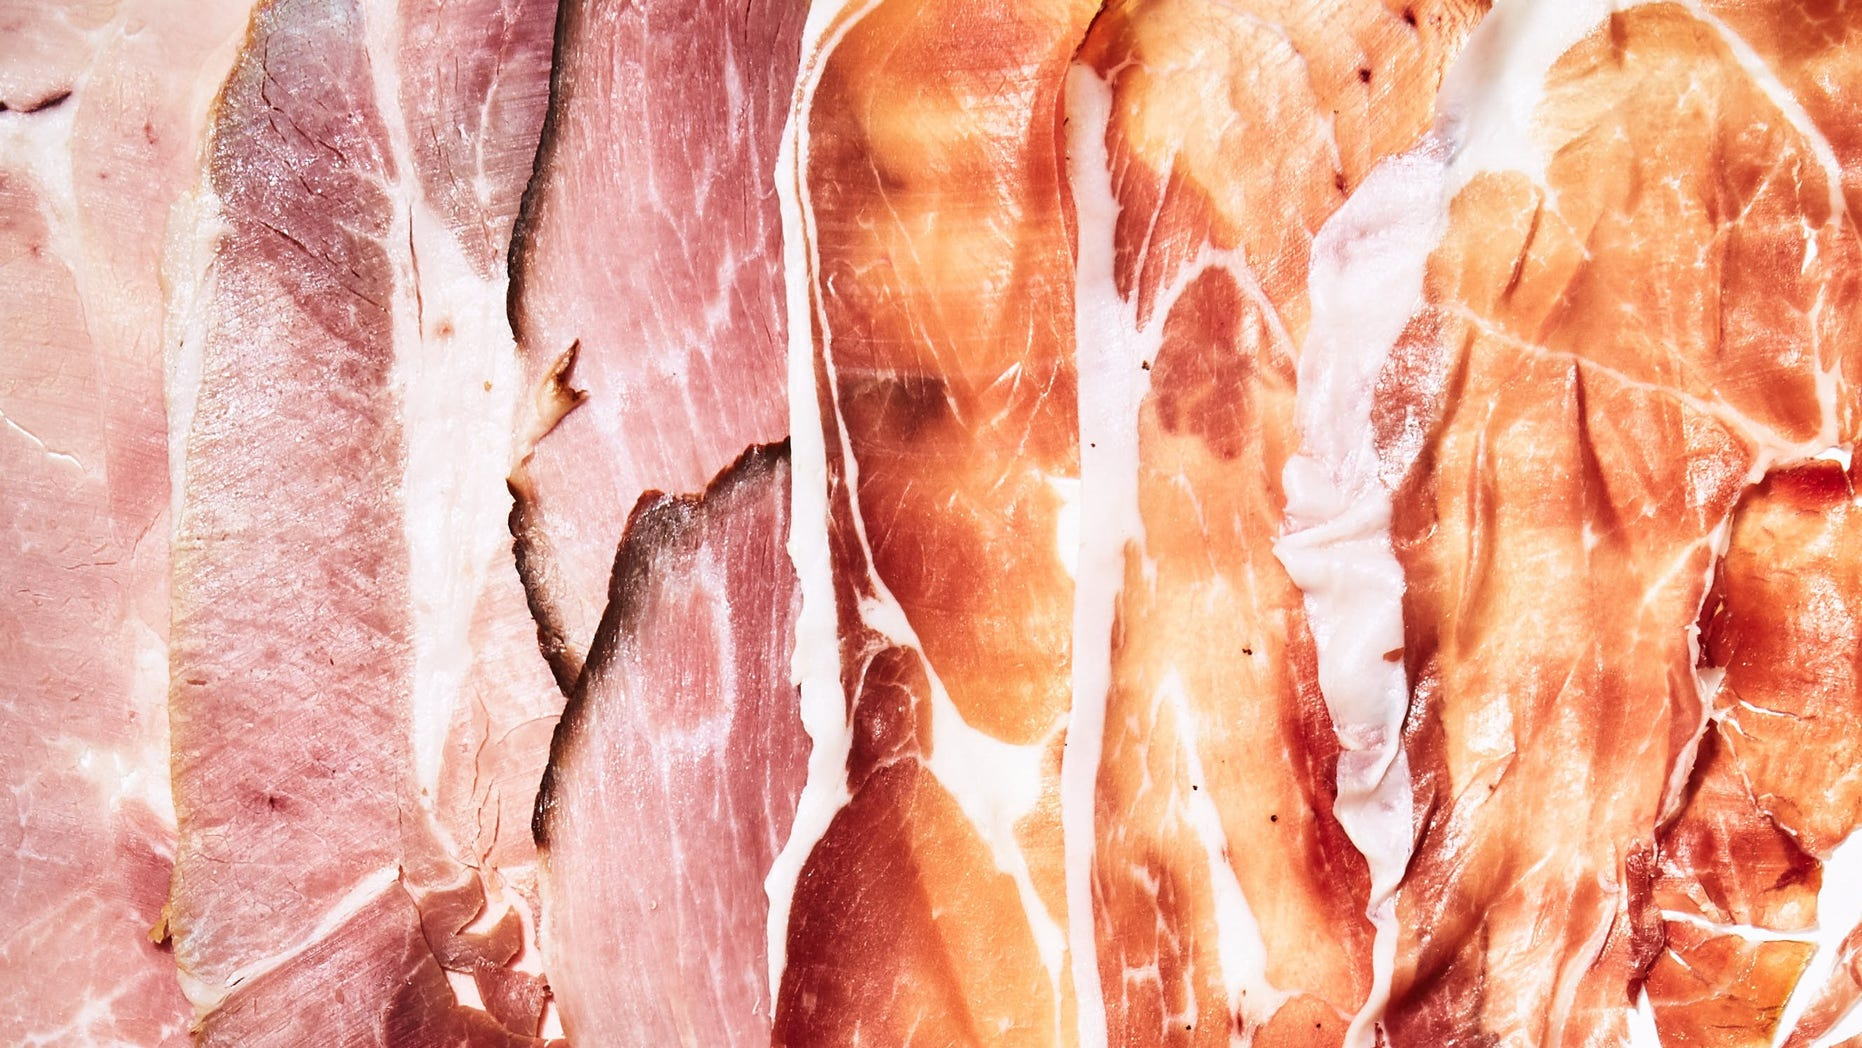 Do you know your hams?